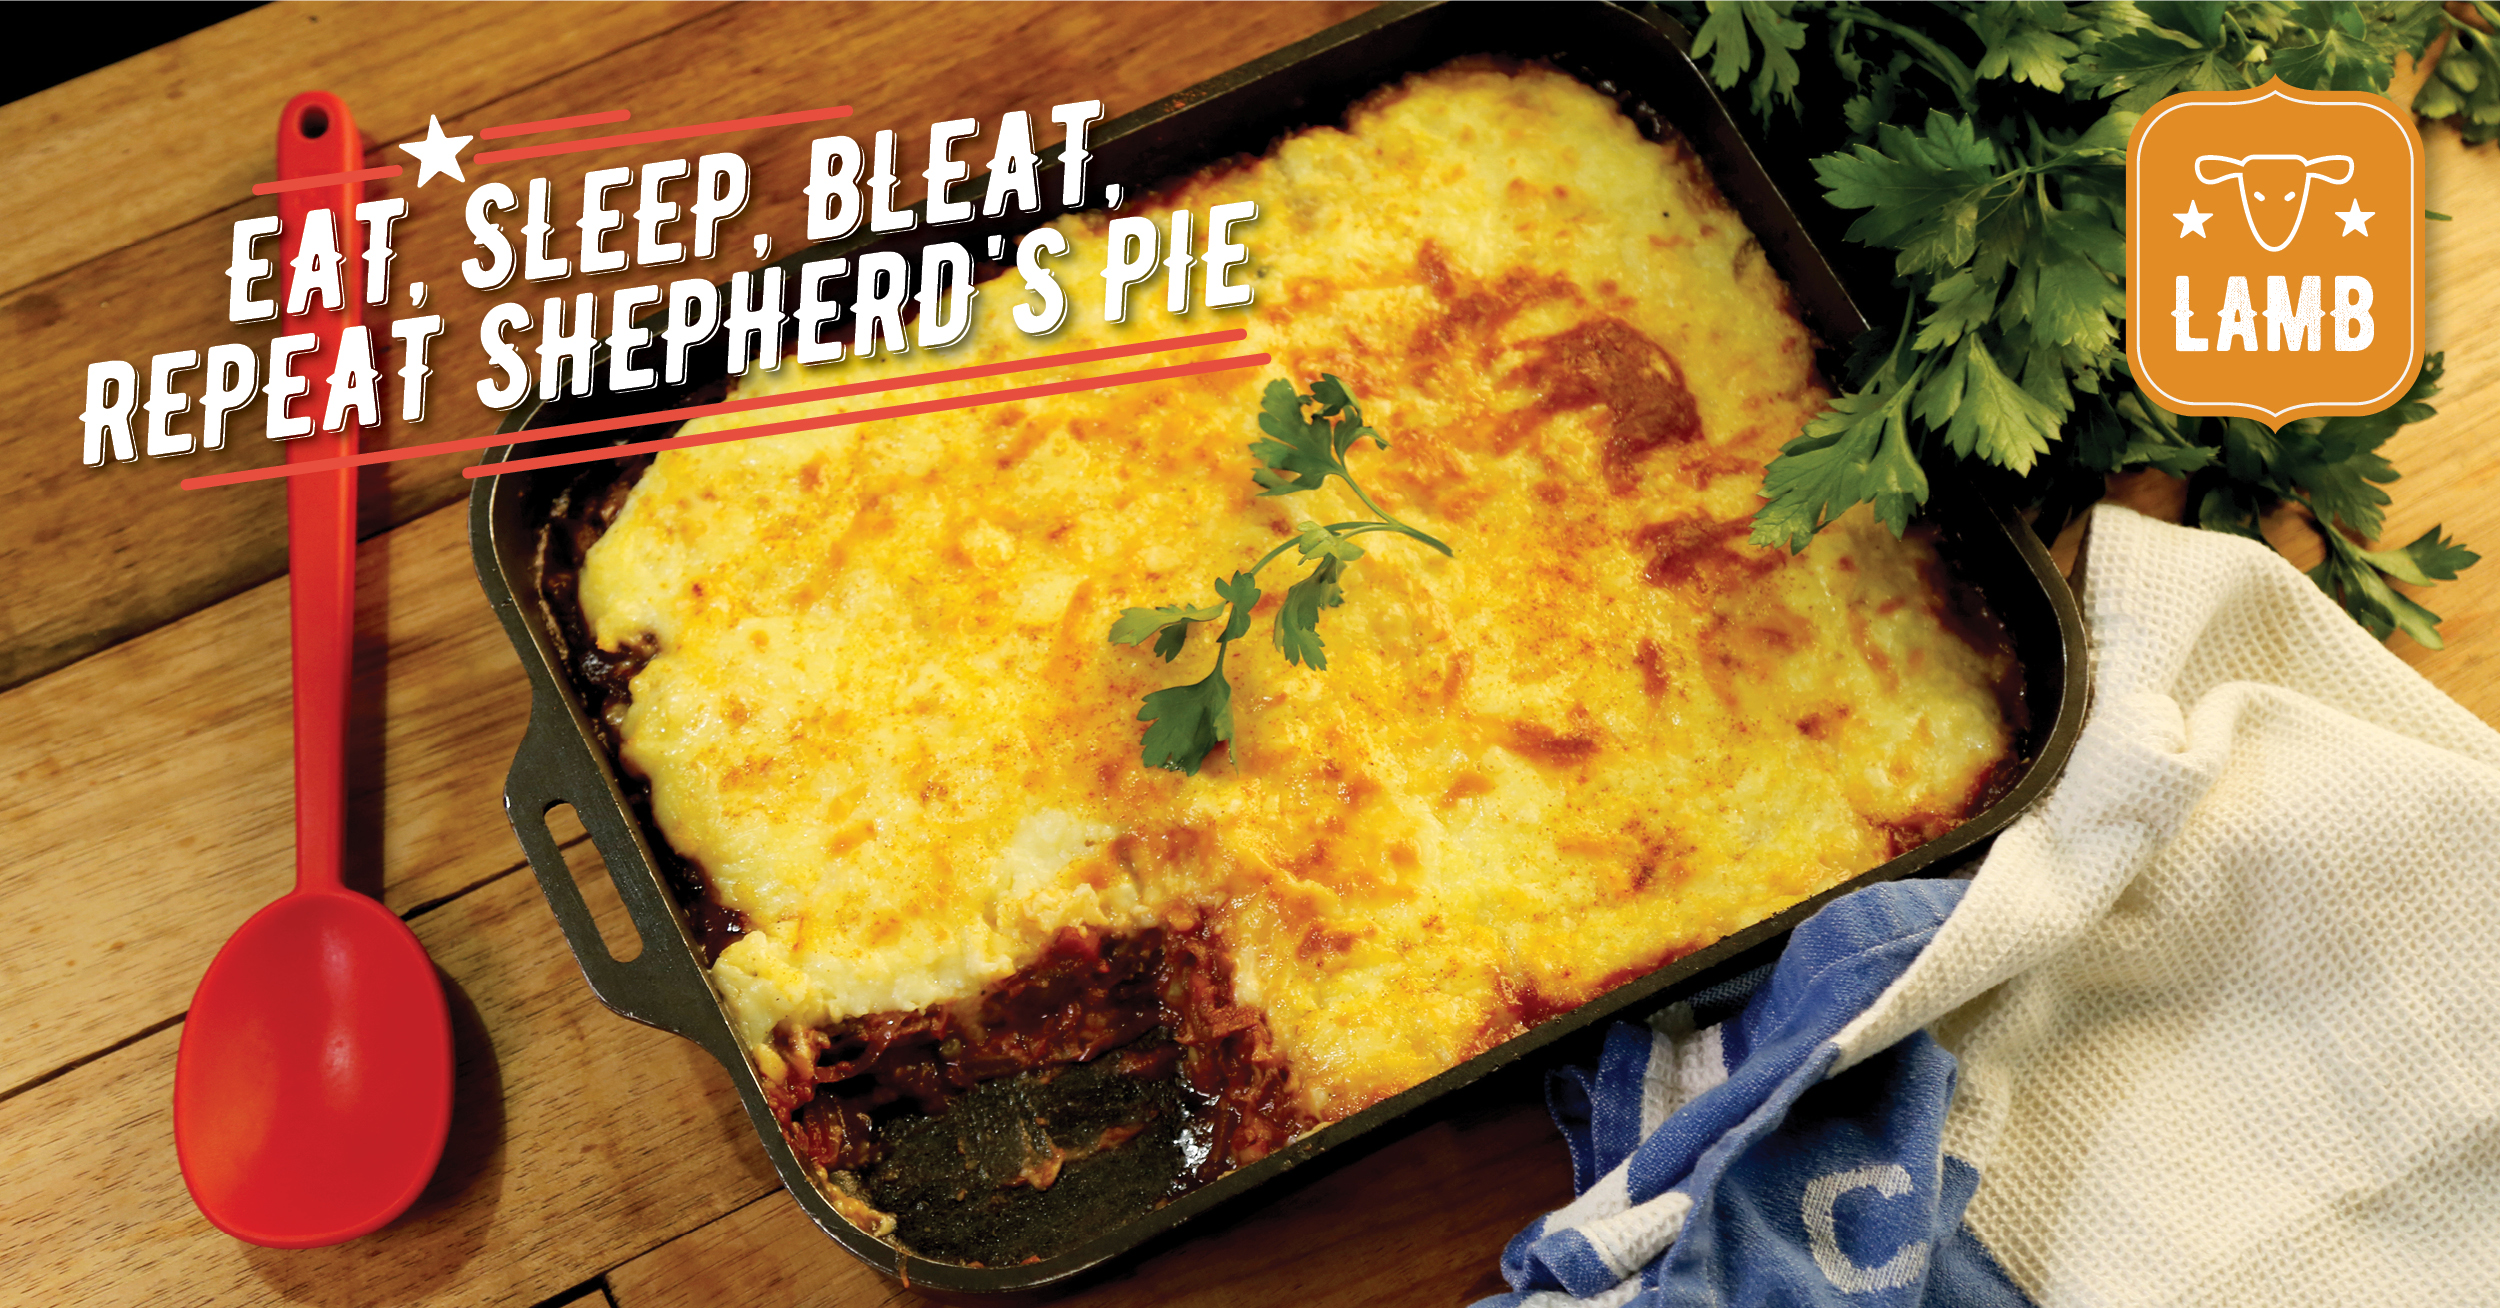 Eat, Sleep, Bleat, Repeat Shepherd's Pie